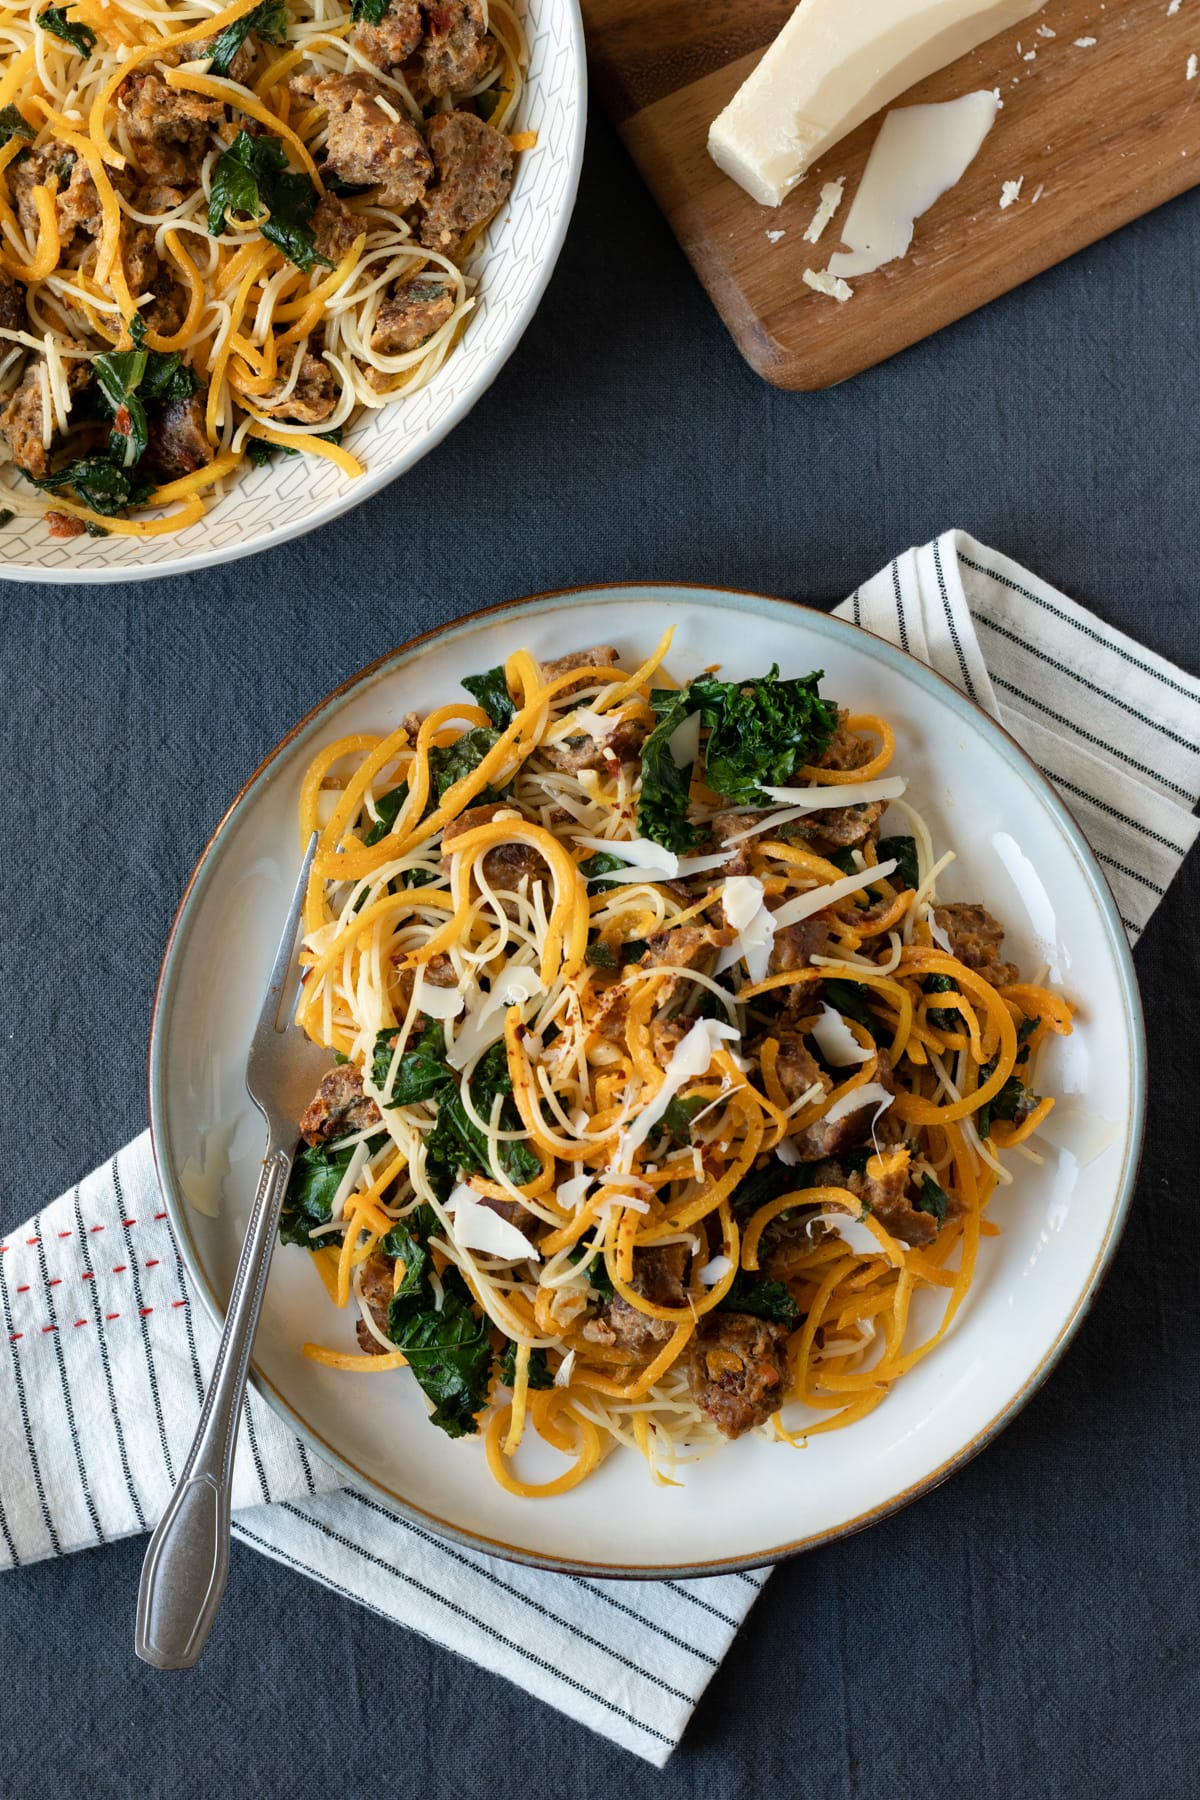 topped with vegan parm, the noodle dish on a plate